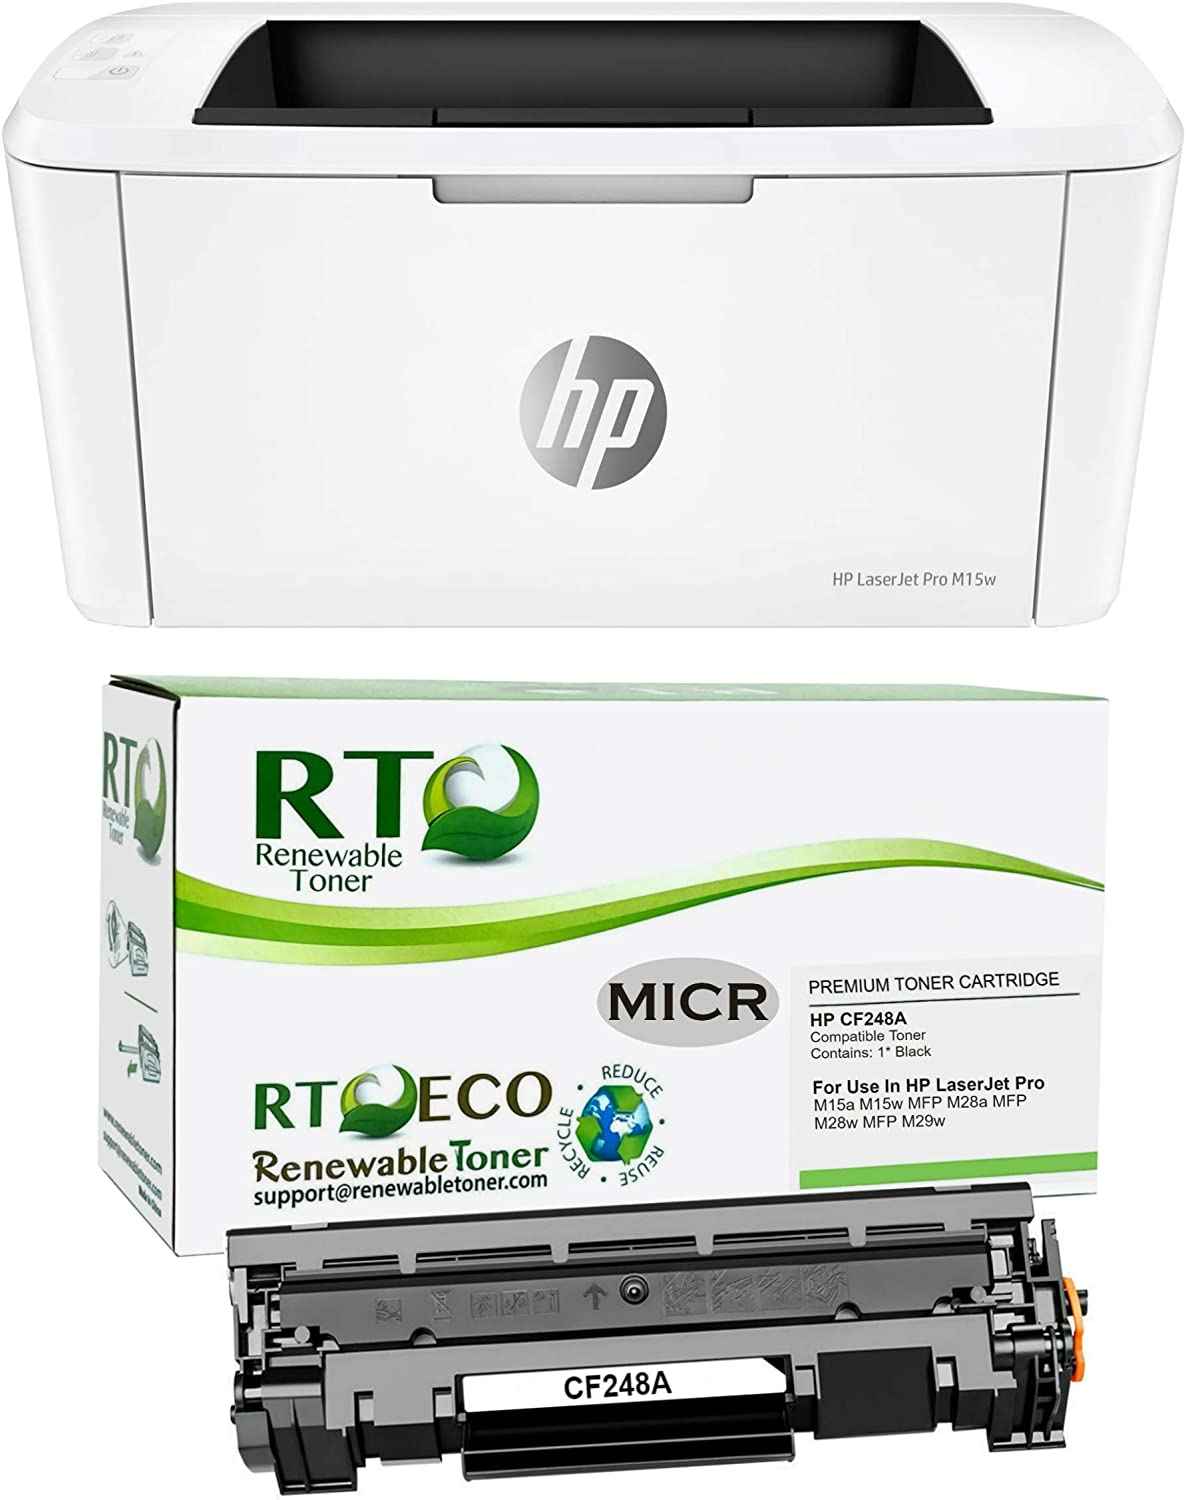 Renewable Toner Laserjet M15w Check Printer Bundle with Compatible HP CF248A 48A MICR Toner Cartridge (2 Items)